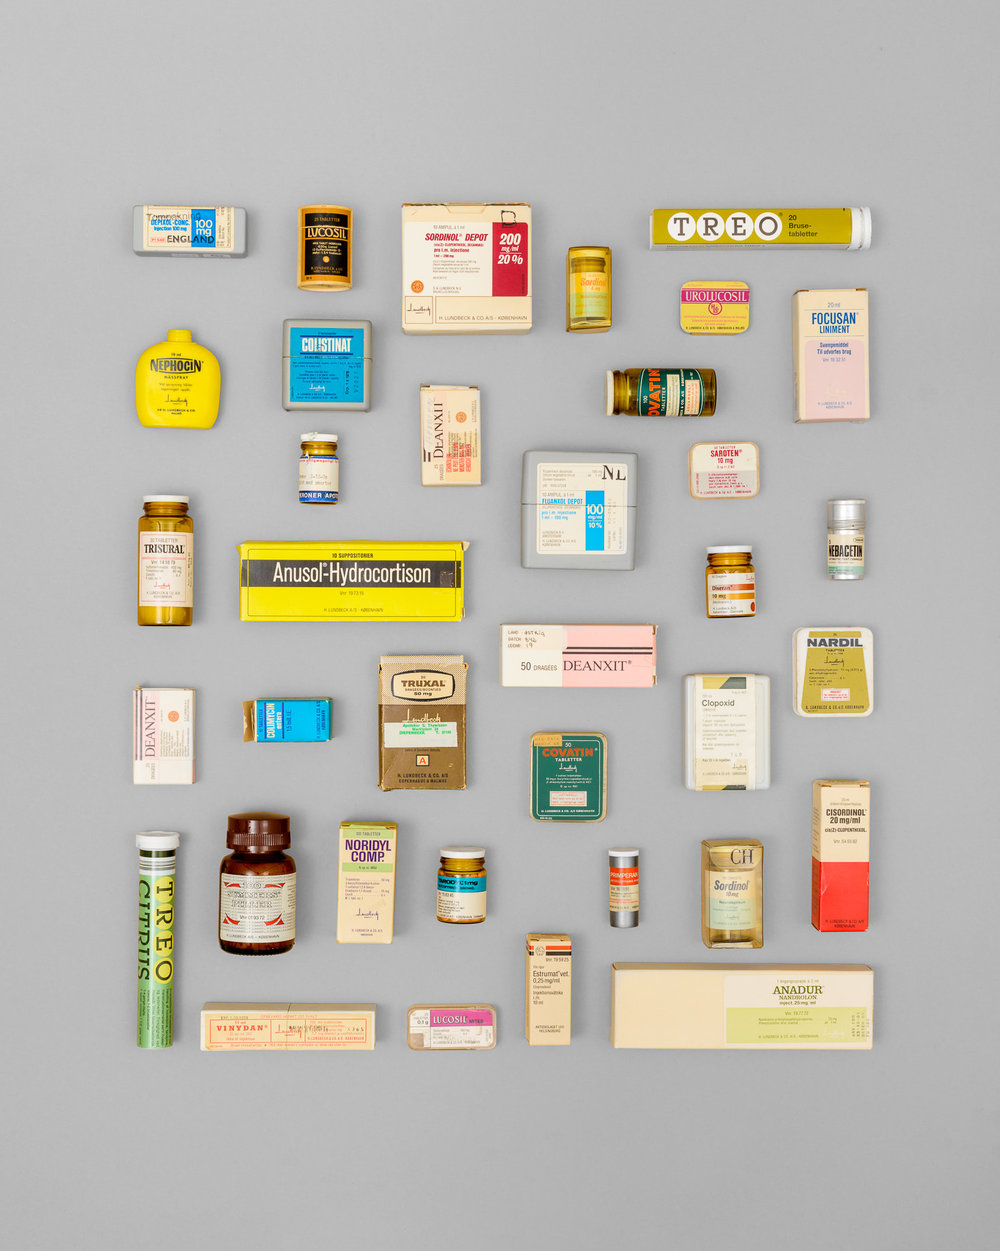 Vintage Lundbeck pharmaceutical packaging